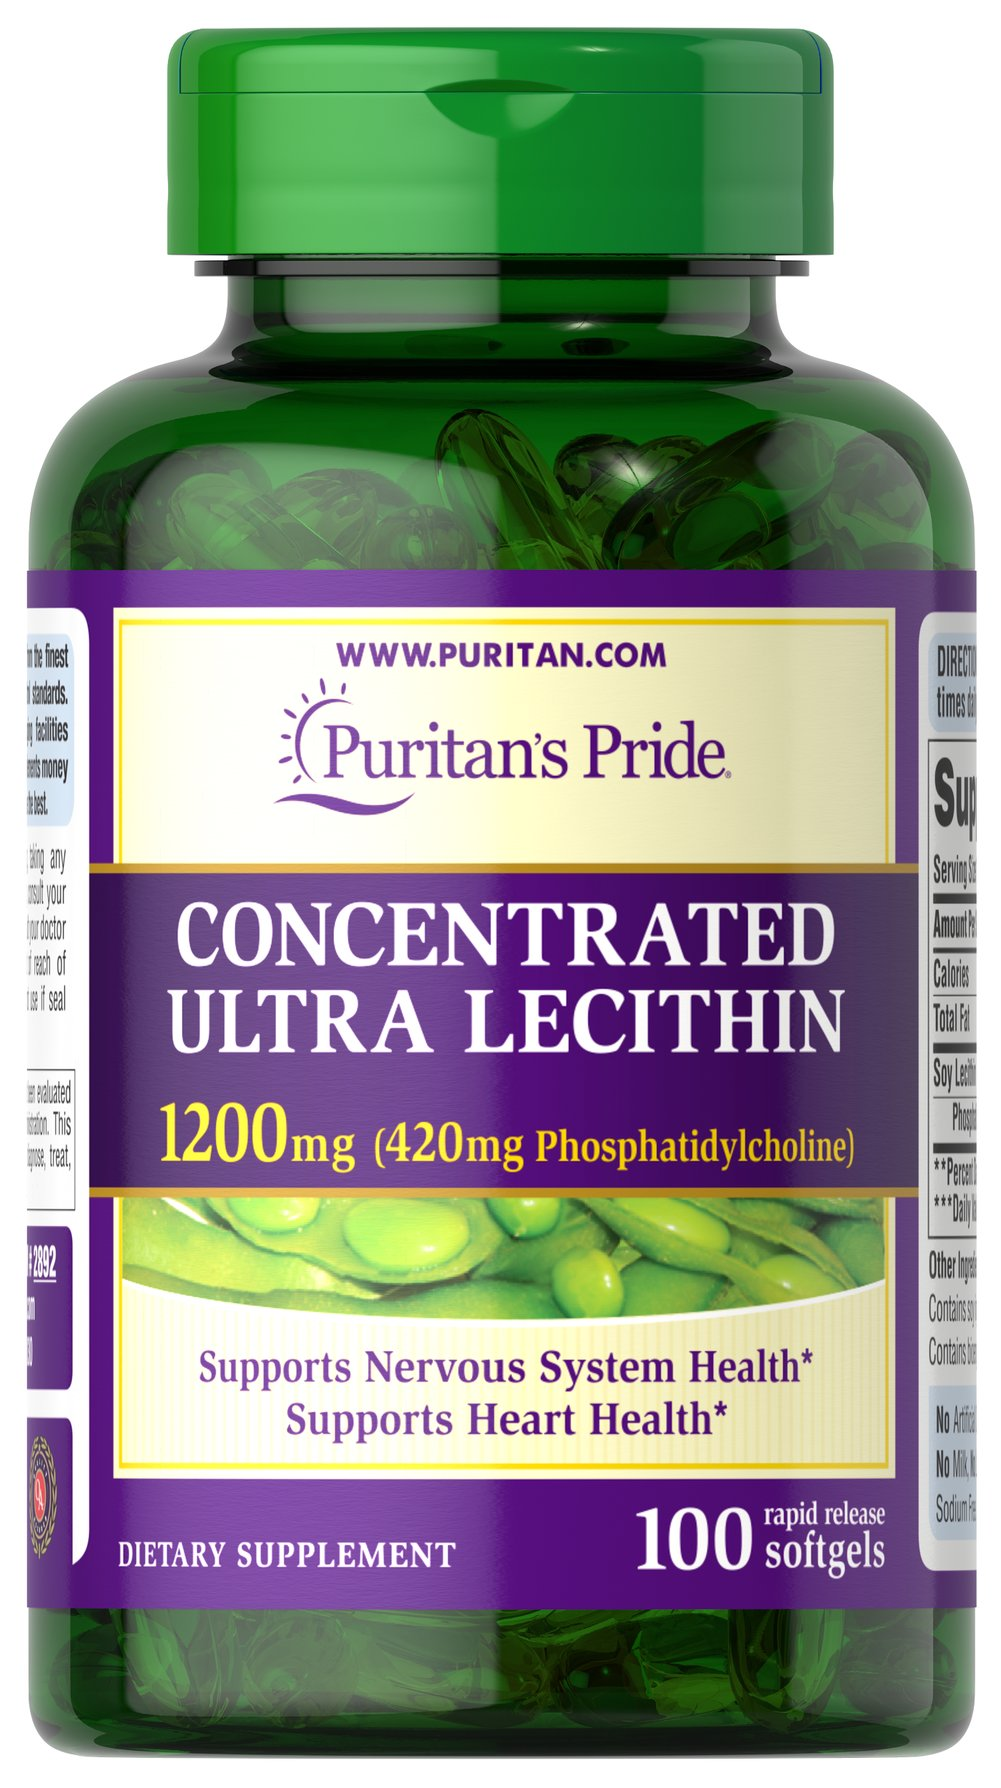 Concentrated Ultra Lecithin 1200 mg  100 Rapid Release Softgels 1200 mg $15.99